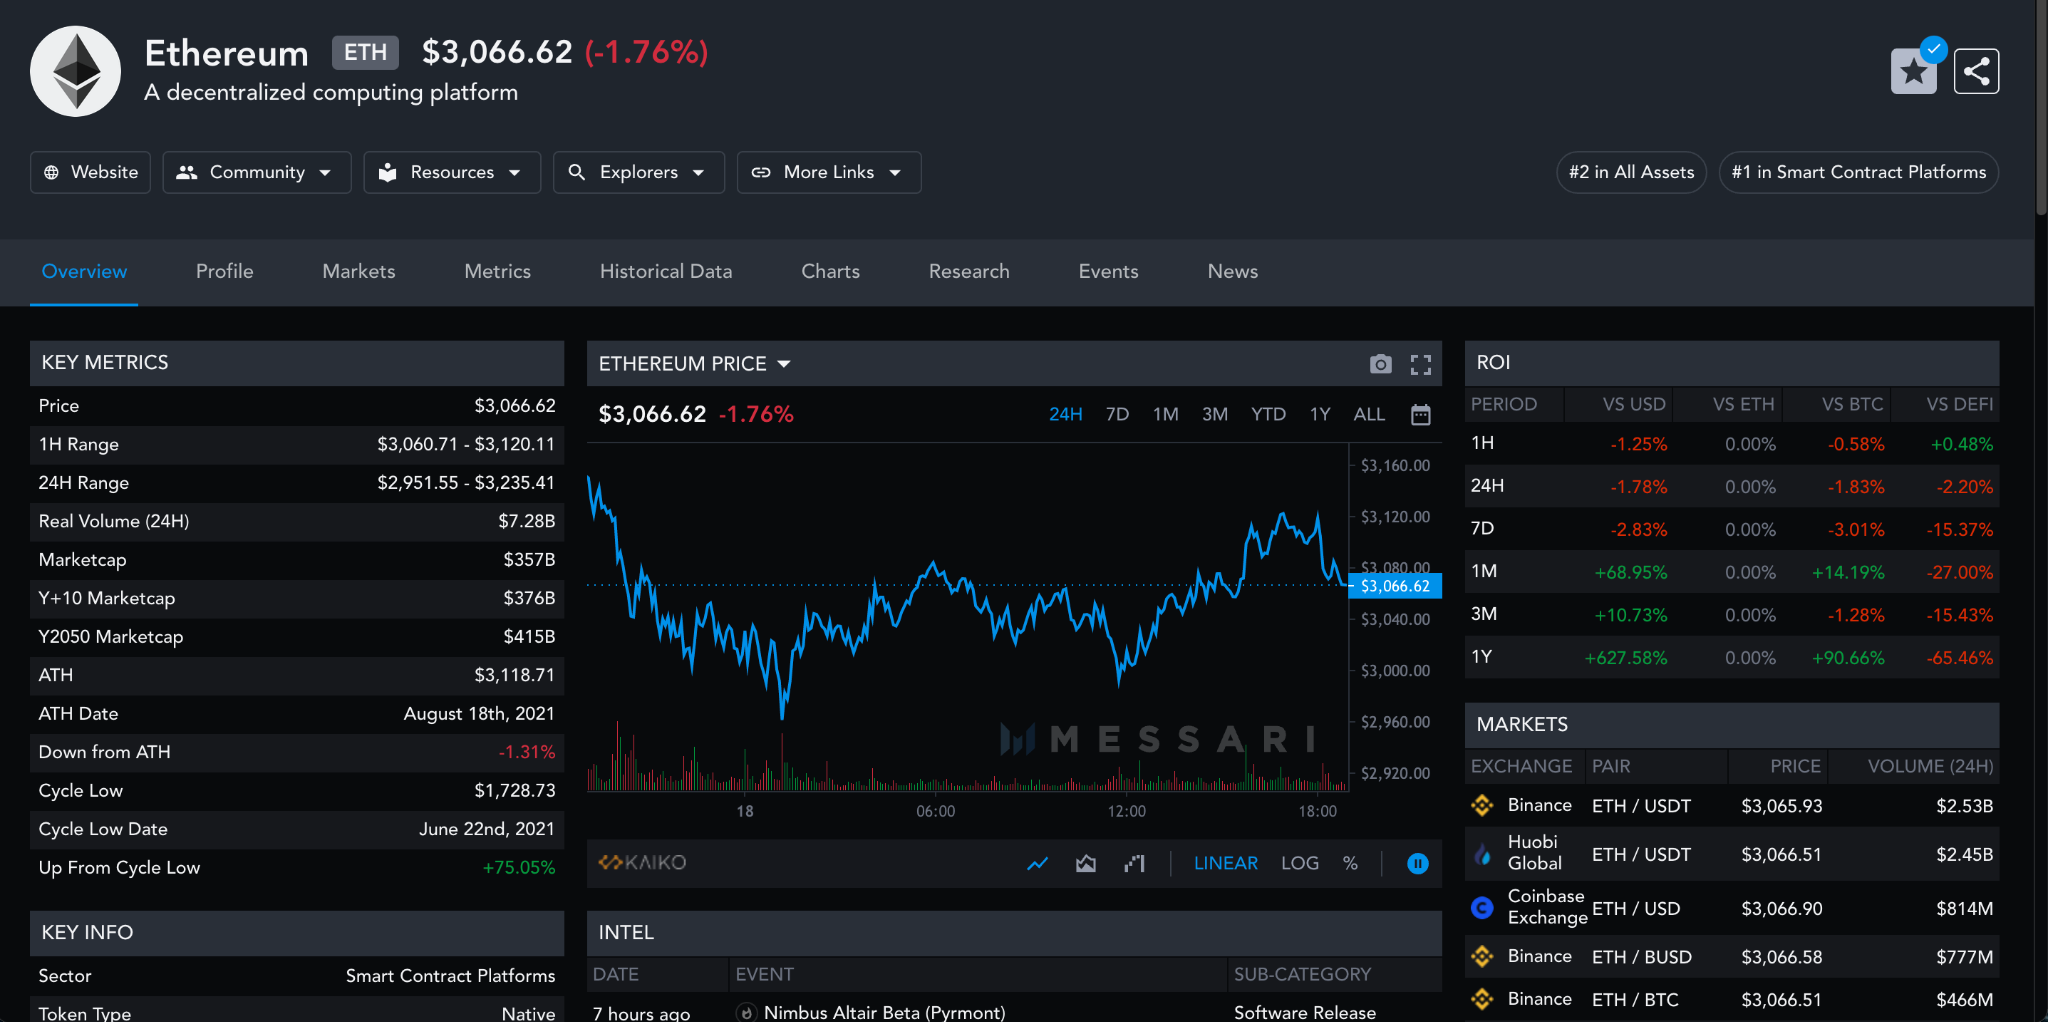 Messari dashboard with a dark background. The dashboard shows all available data about Ethereum, including real-time price, ROI, and key metrics like market cap and price.